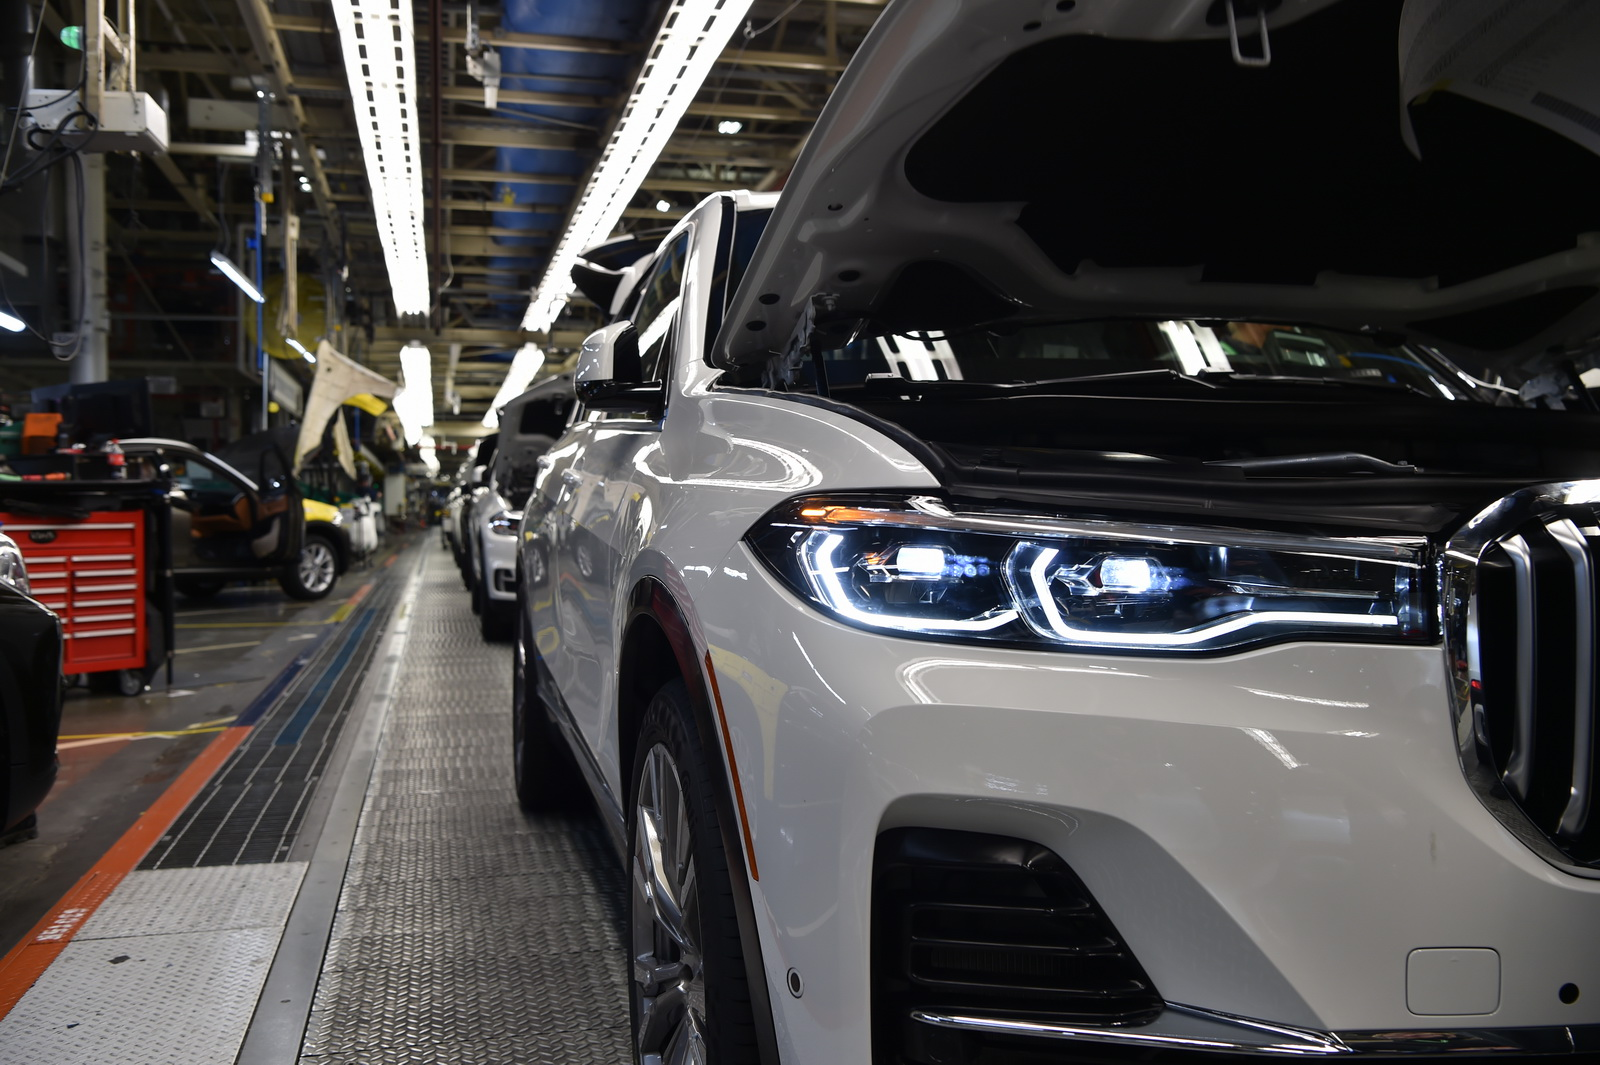 BMW X7 reaches pre-production stage in Greer